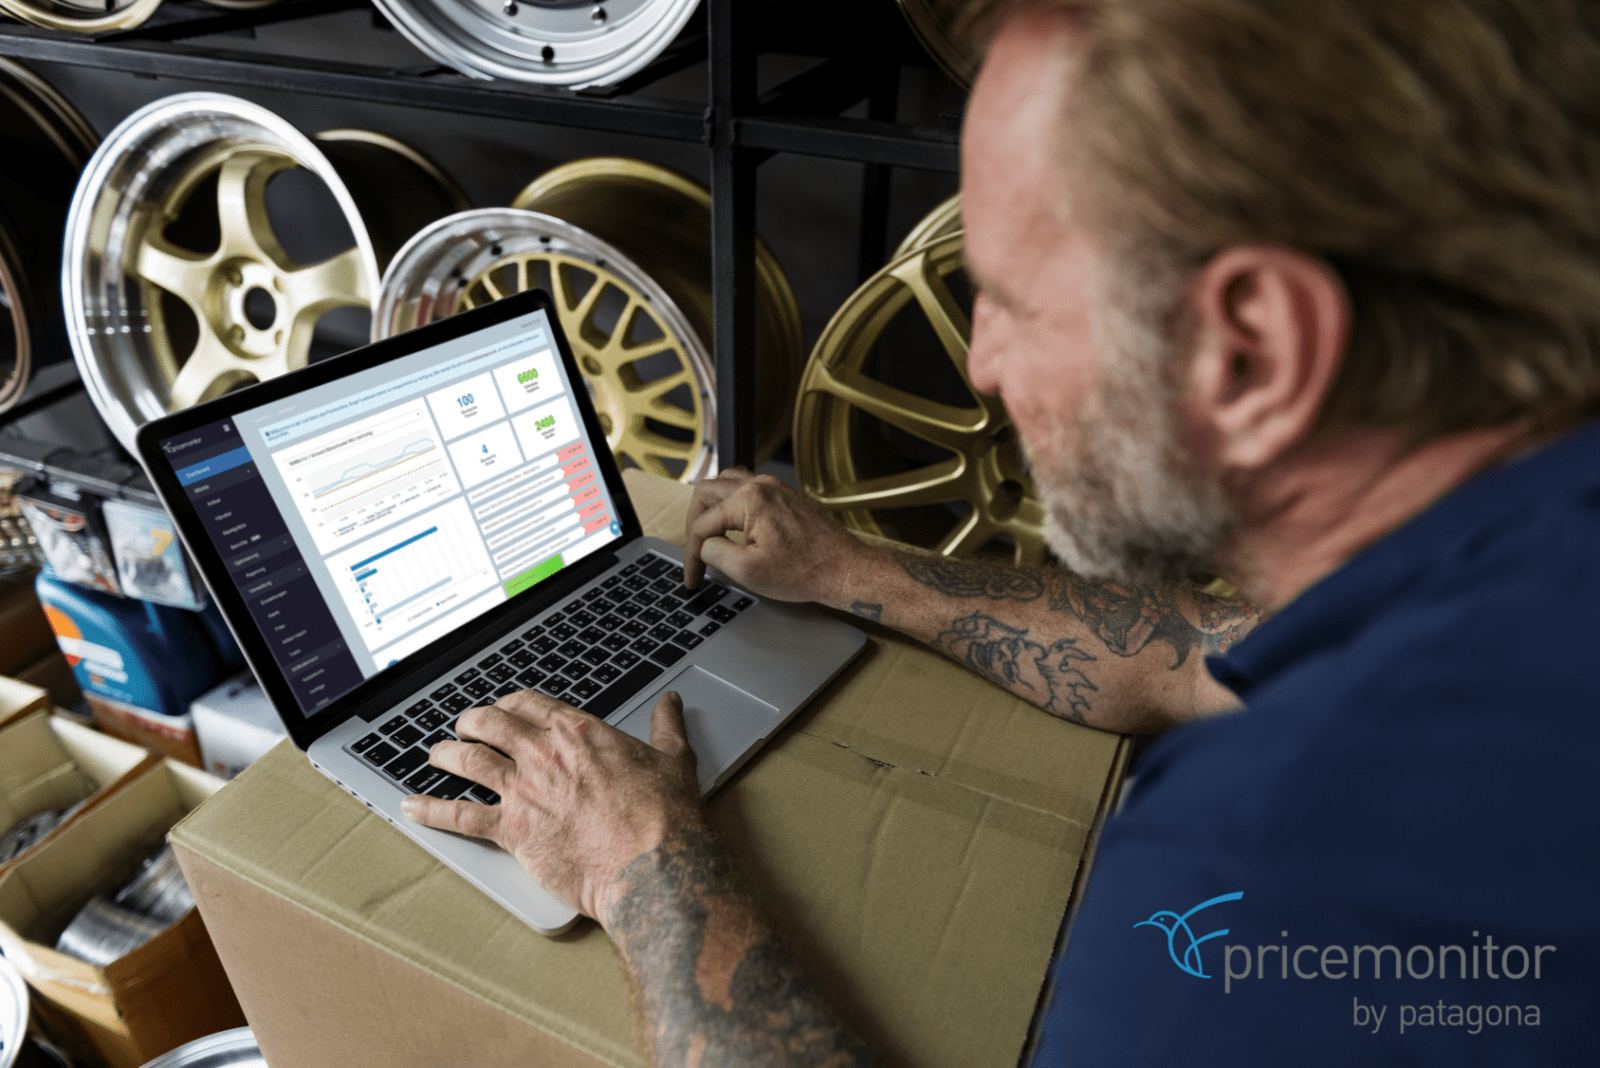 repricing car parts pricemonitor